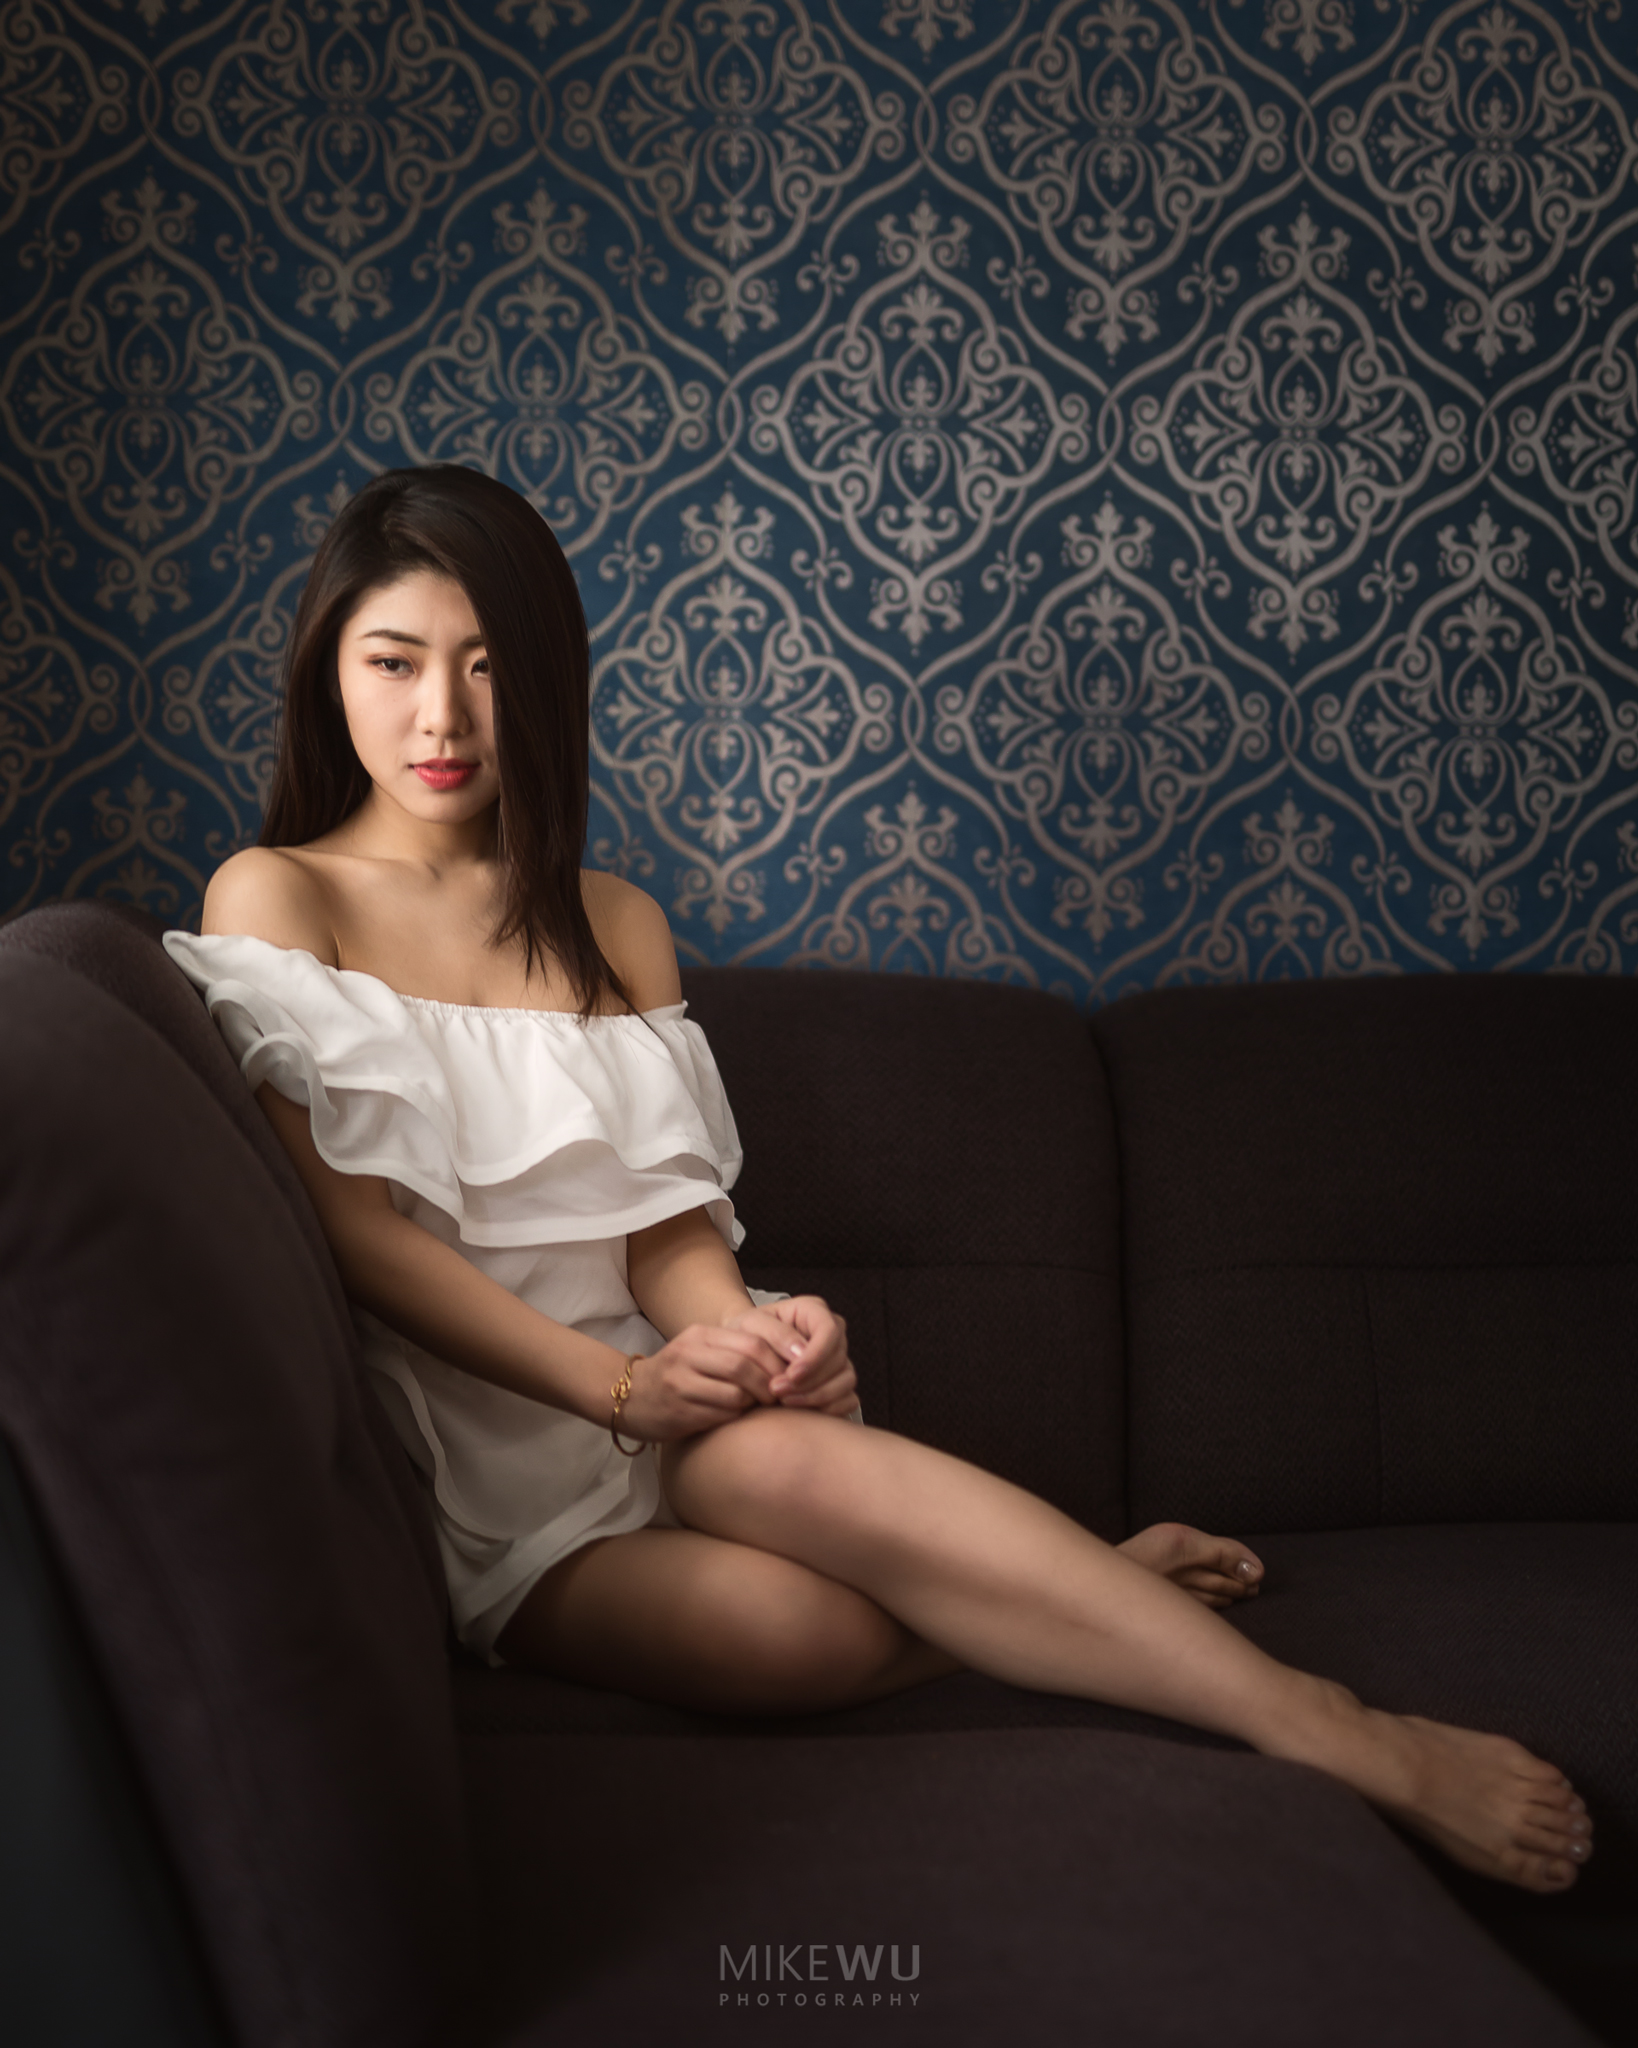 vancouver portrait photographer mike wu indoor studio photography natural wallpaper inside couch comfy cozy white dress legs chinese beauty toronto